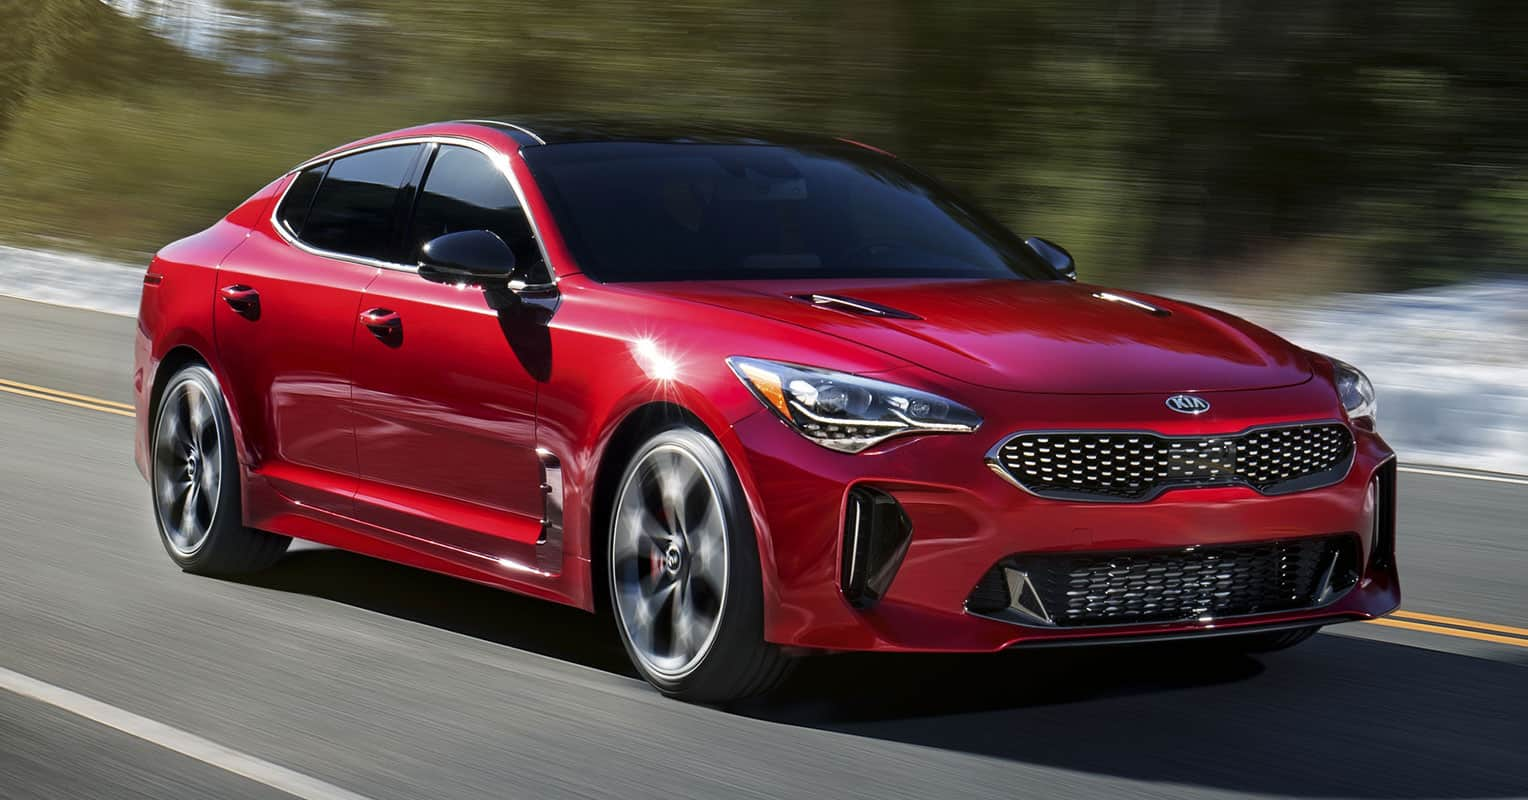 Kia Stinger frontal